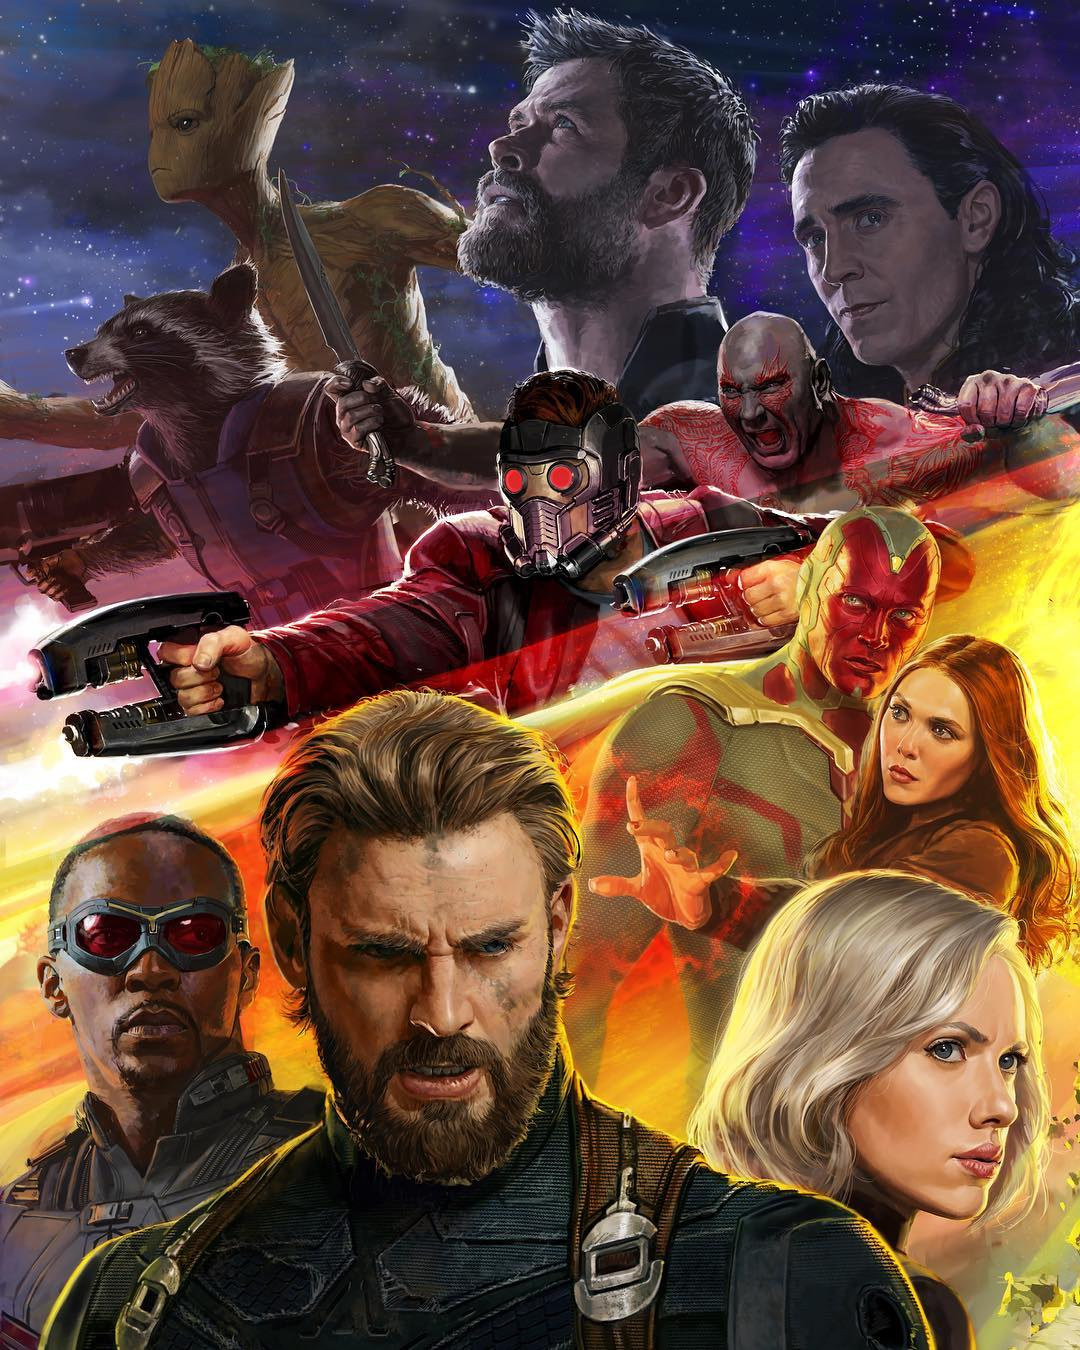 Avengers: Infinity War 2017 SDCC Poster Art By Ryan